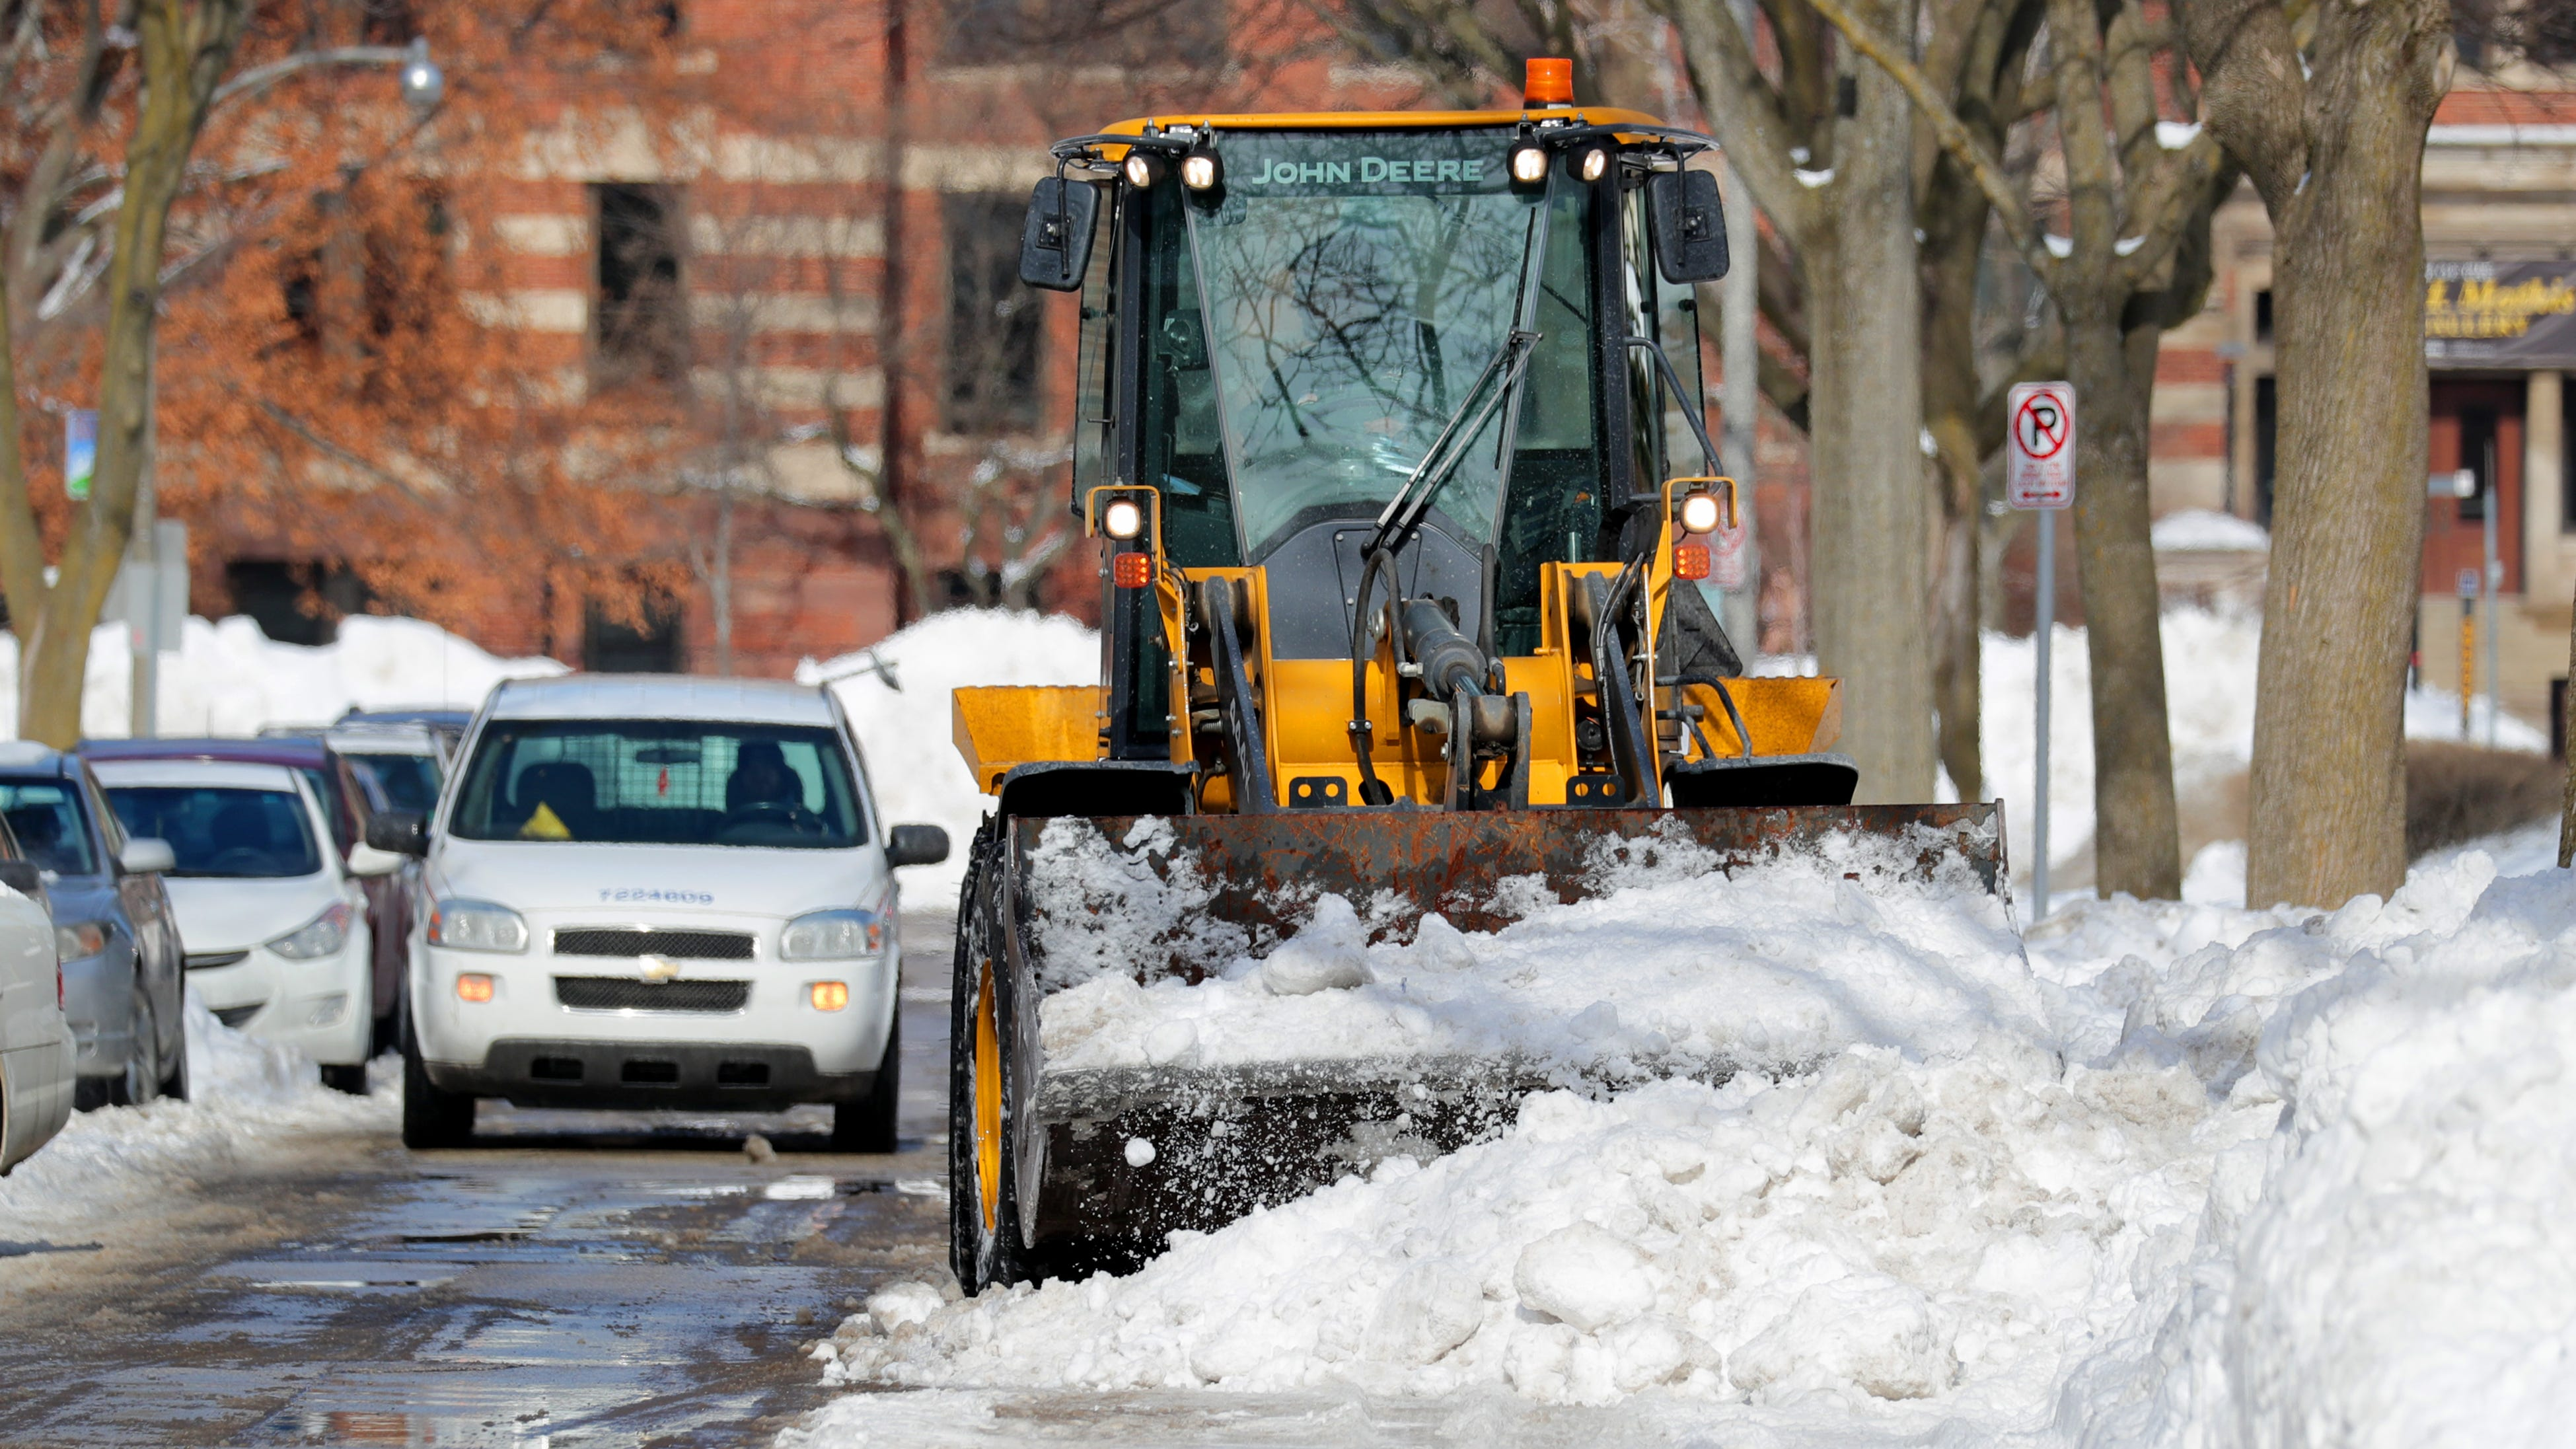 Wisconsin Weather Crazy Winter To Stay Cold And Snowy Into March